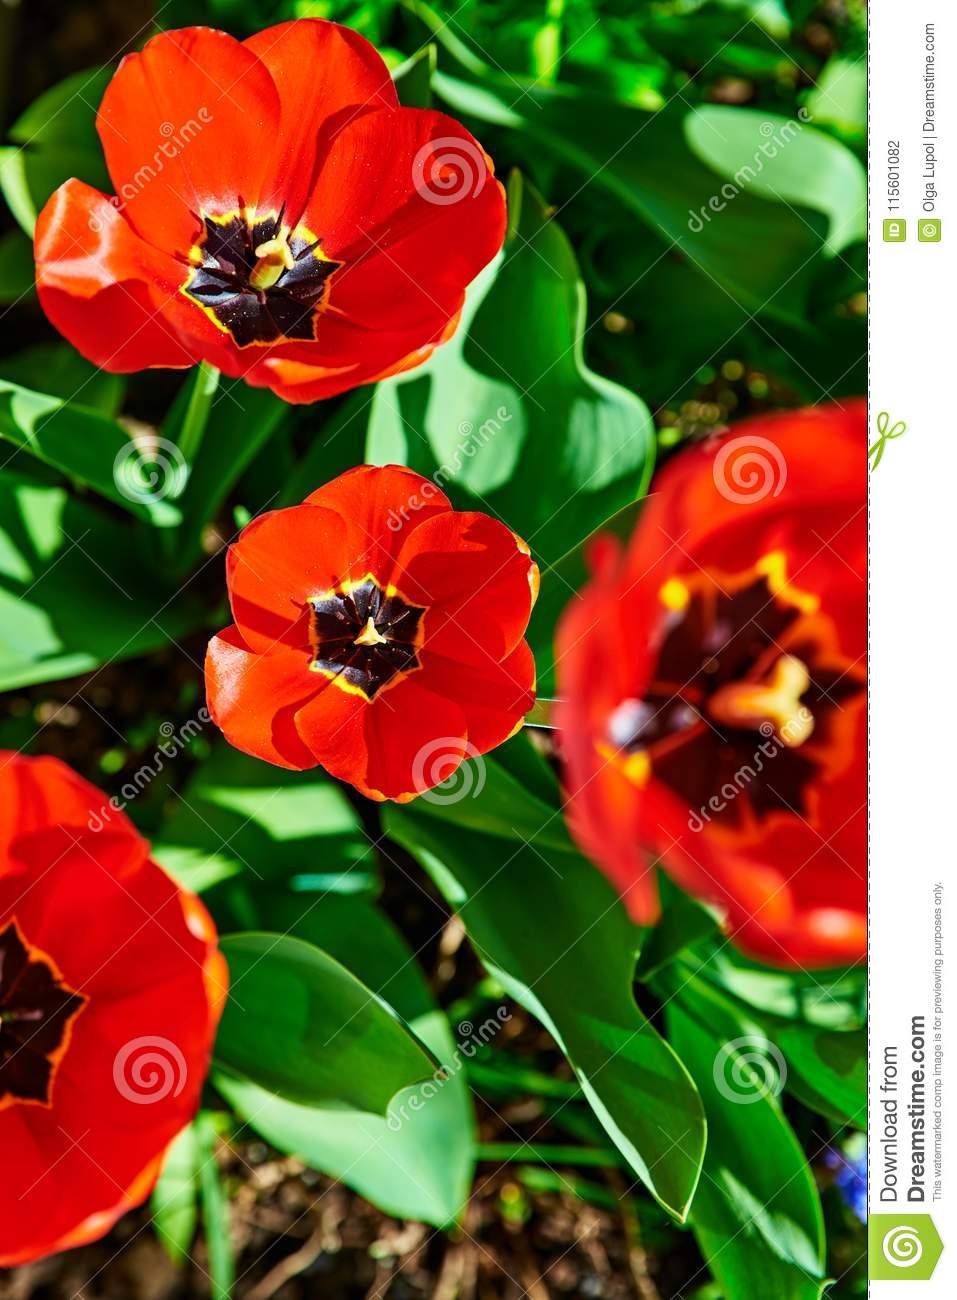 Spring Red Flower Tulips Bunch Dutch Flowers Stock Photo Image Of